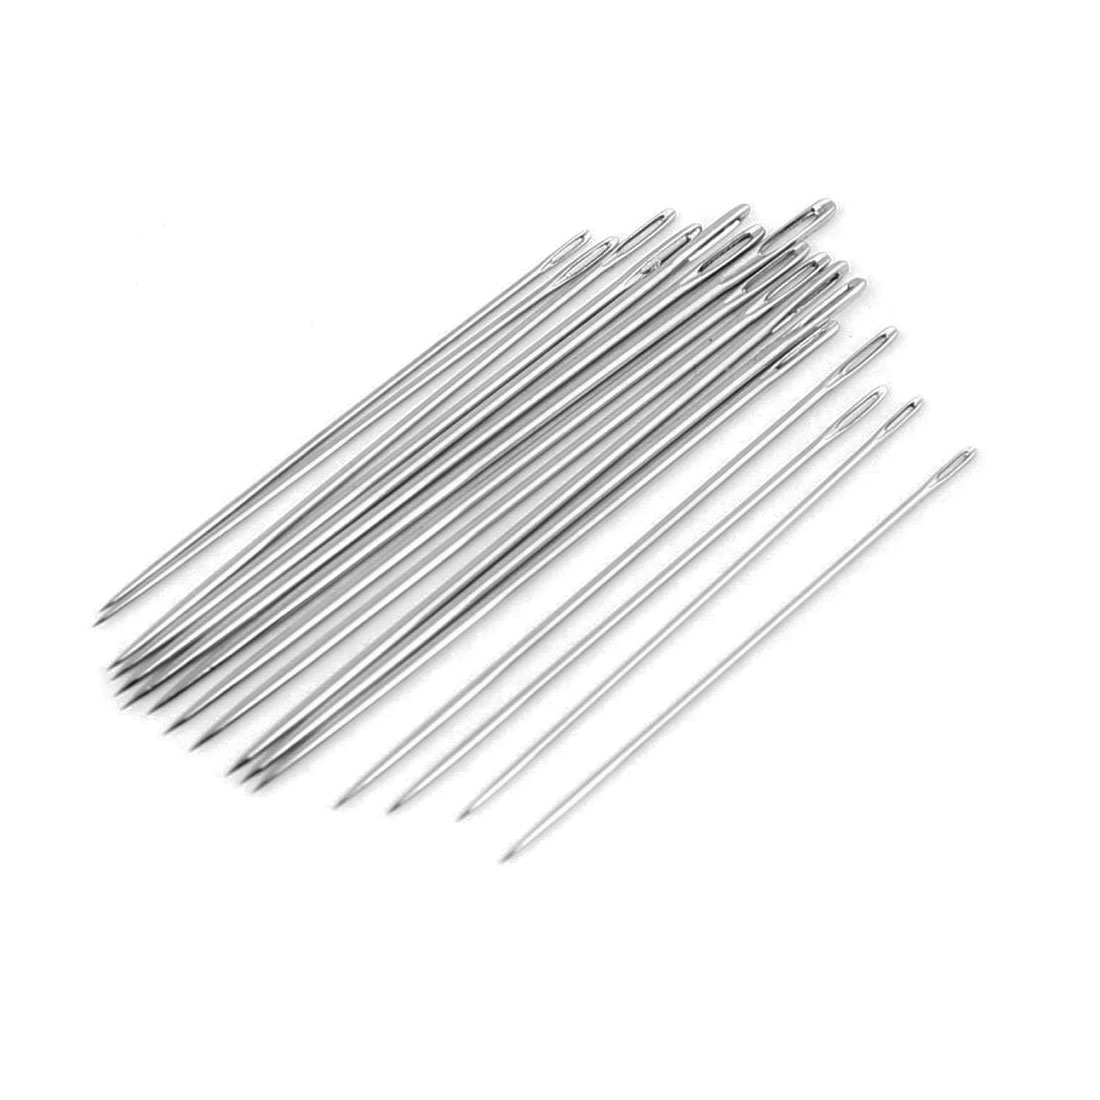 16 in 1 Silver Tone Sharp Pointed Tip Stitching Sewing Needles